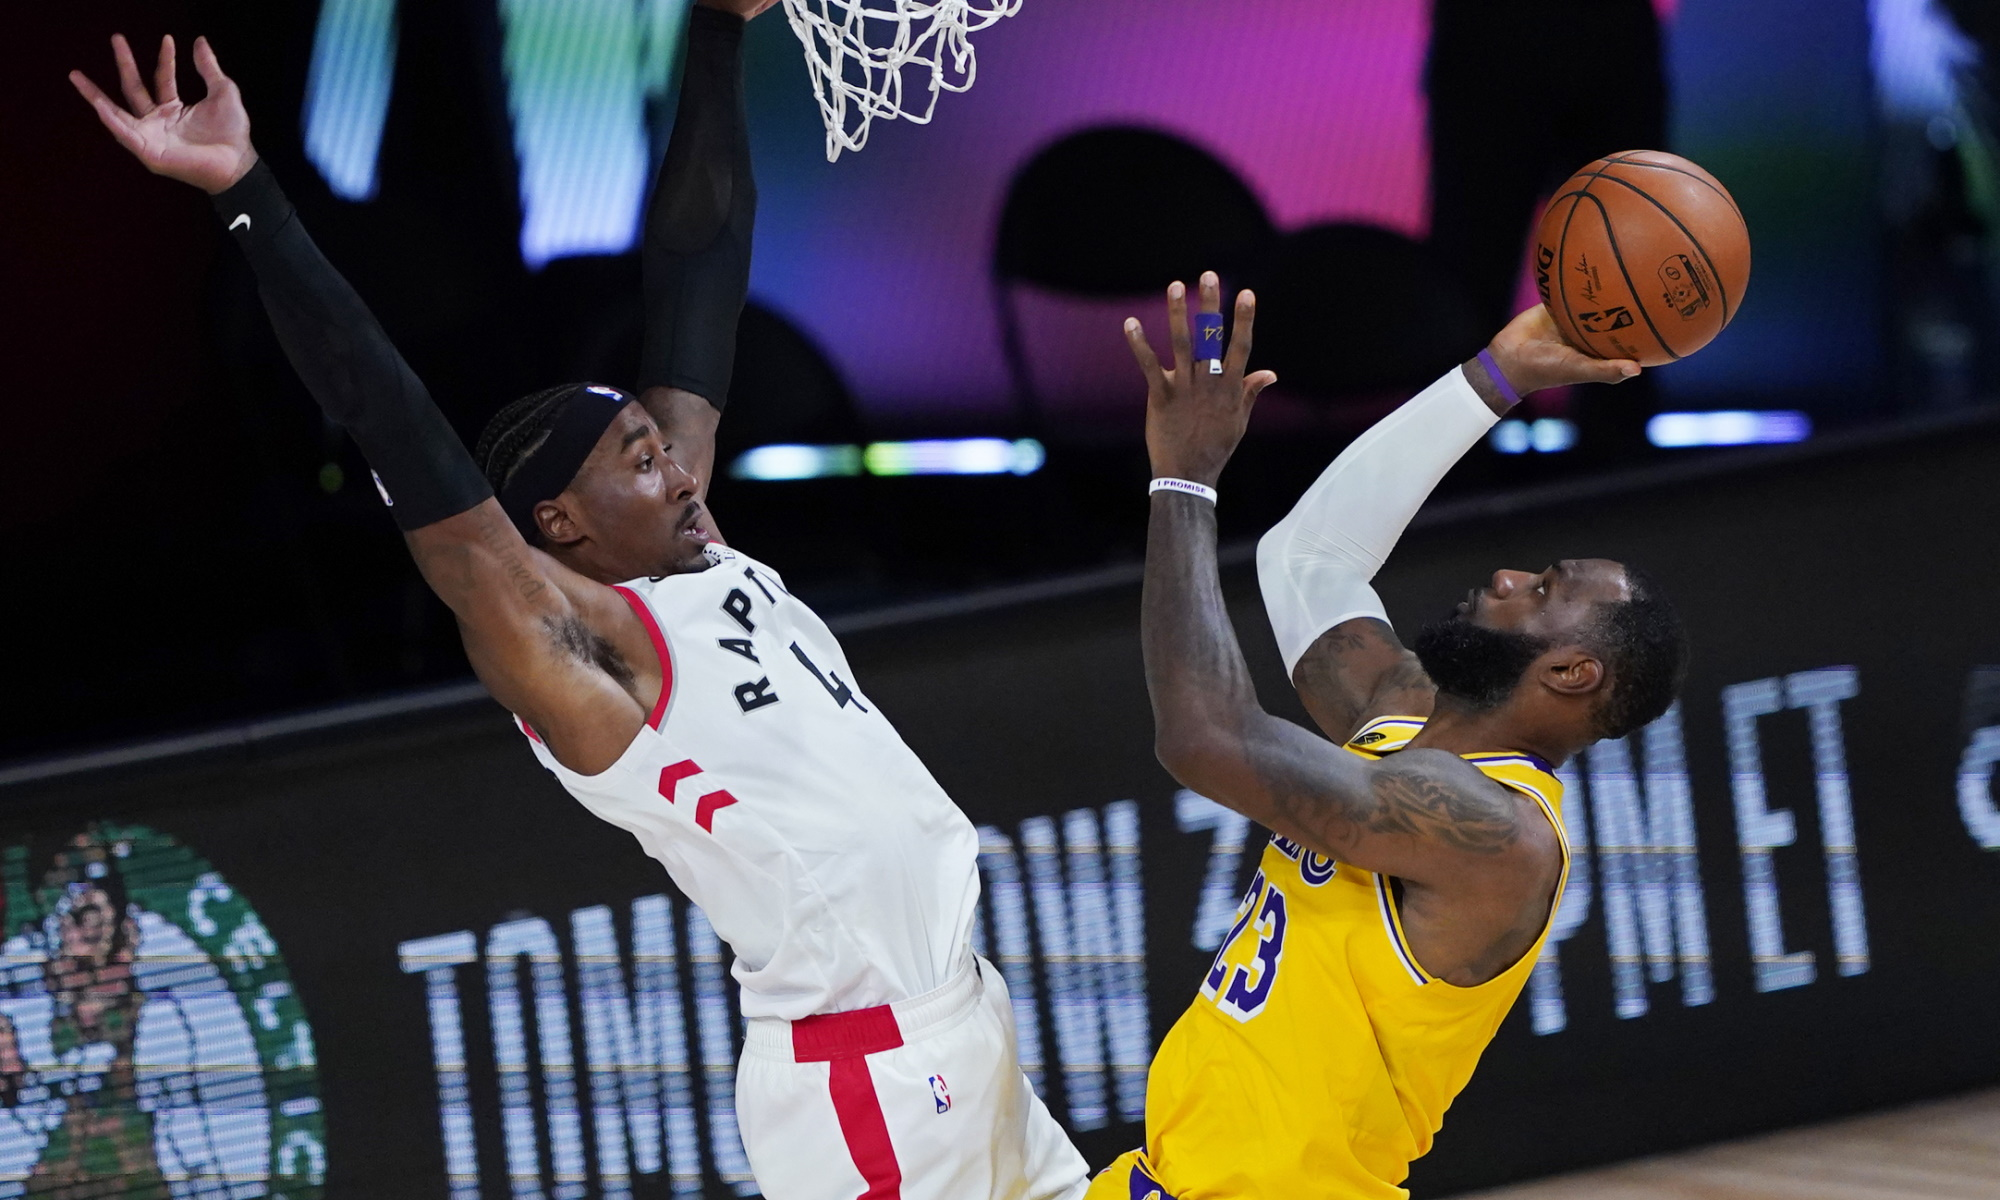 The Lakers' LeBron James reacts after a play against the Raptors during the second half Aug. 1, 2020. The Lakers' LeBron James reacts after a play against the Raptors during the second half. He finished with 20 points (Ashley Landis / Associated Press)